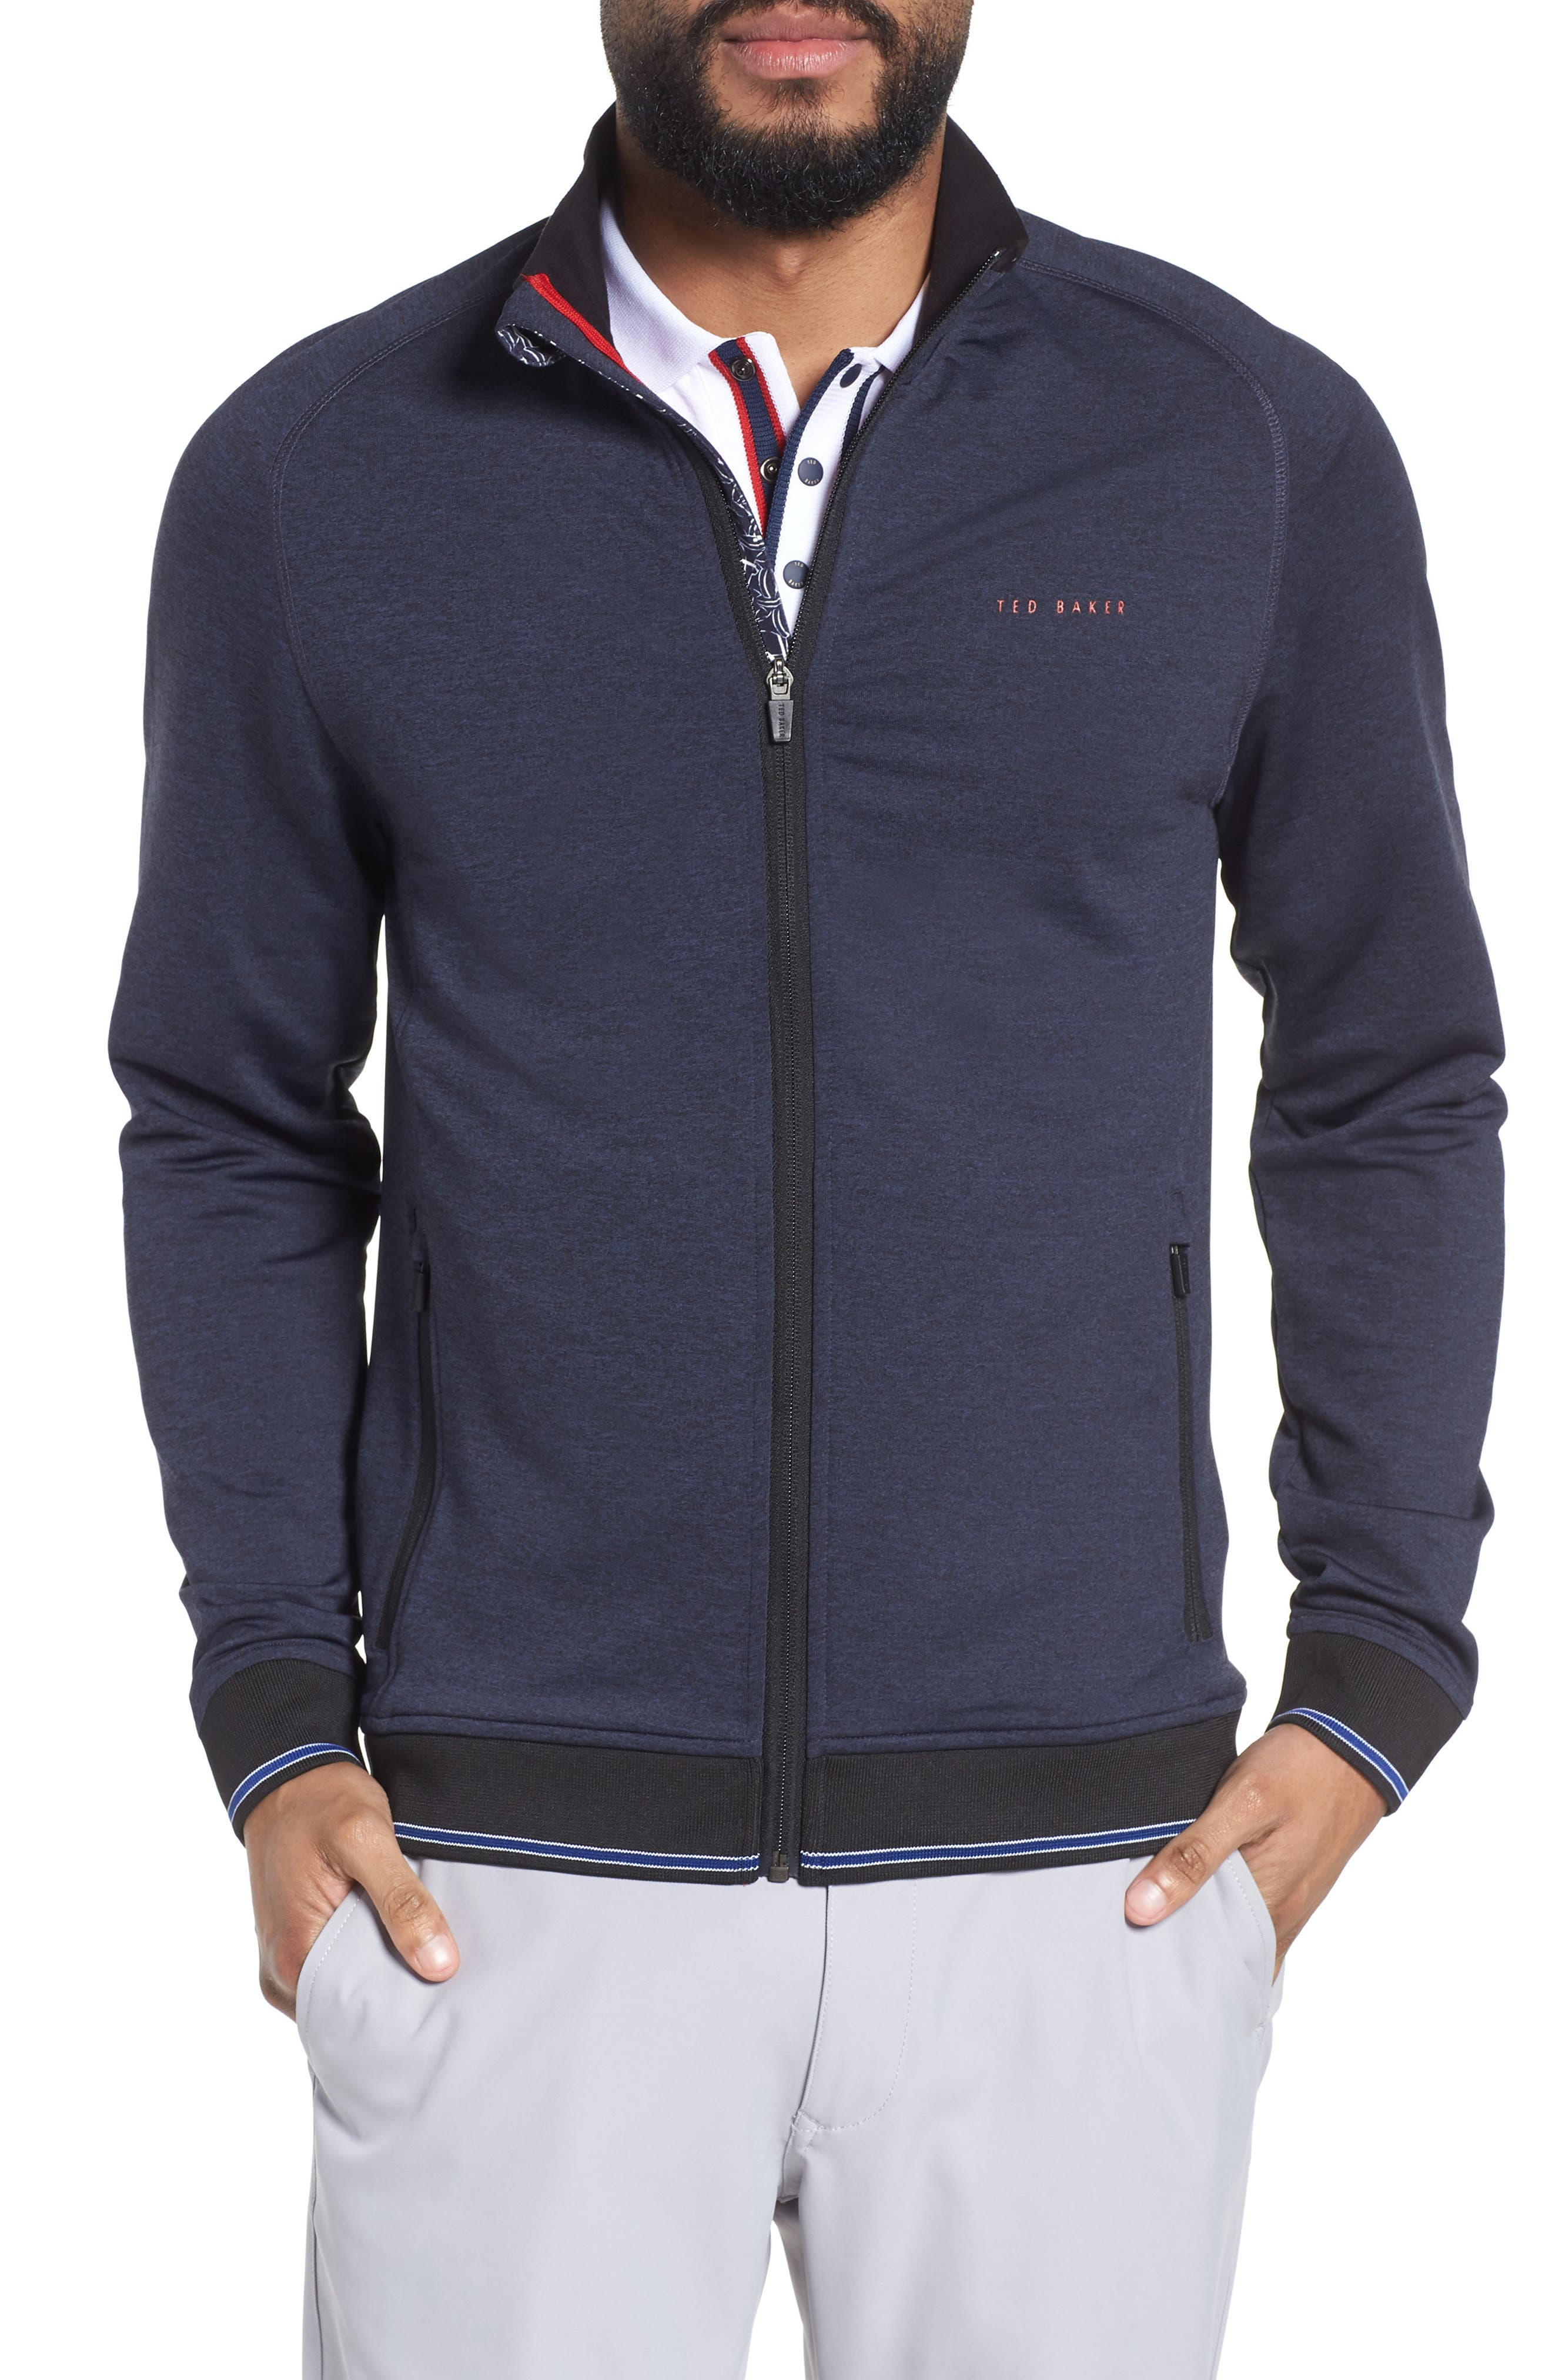 Ted Baker London Parway Knit Golf Jacket